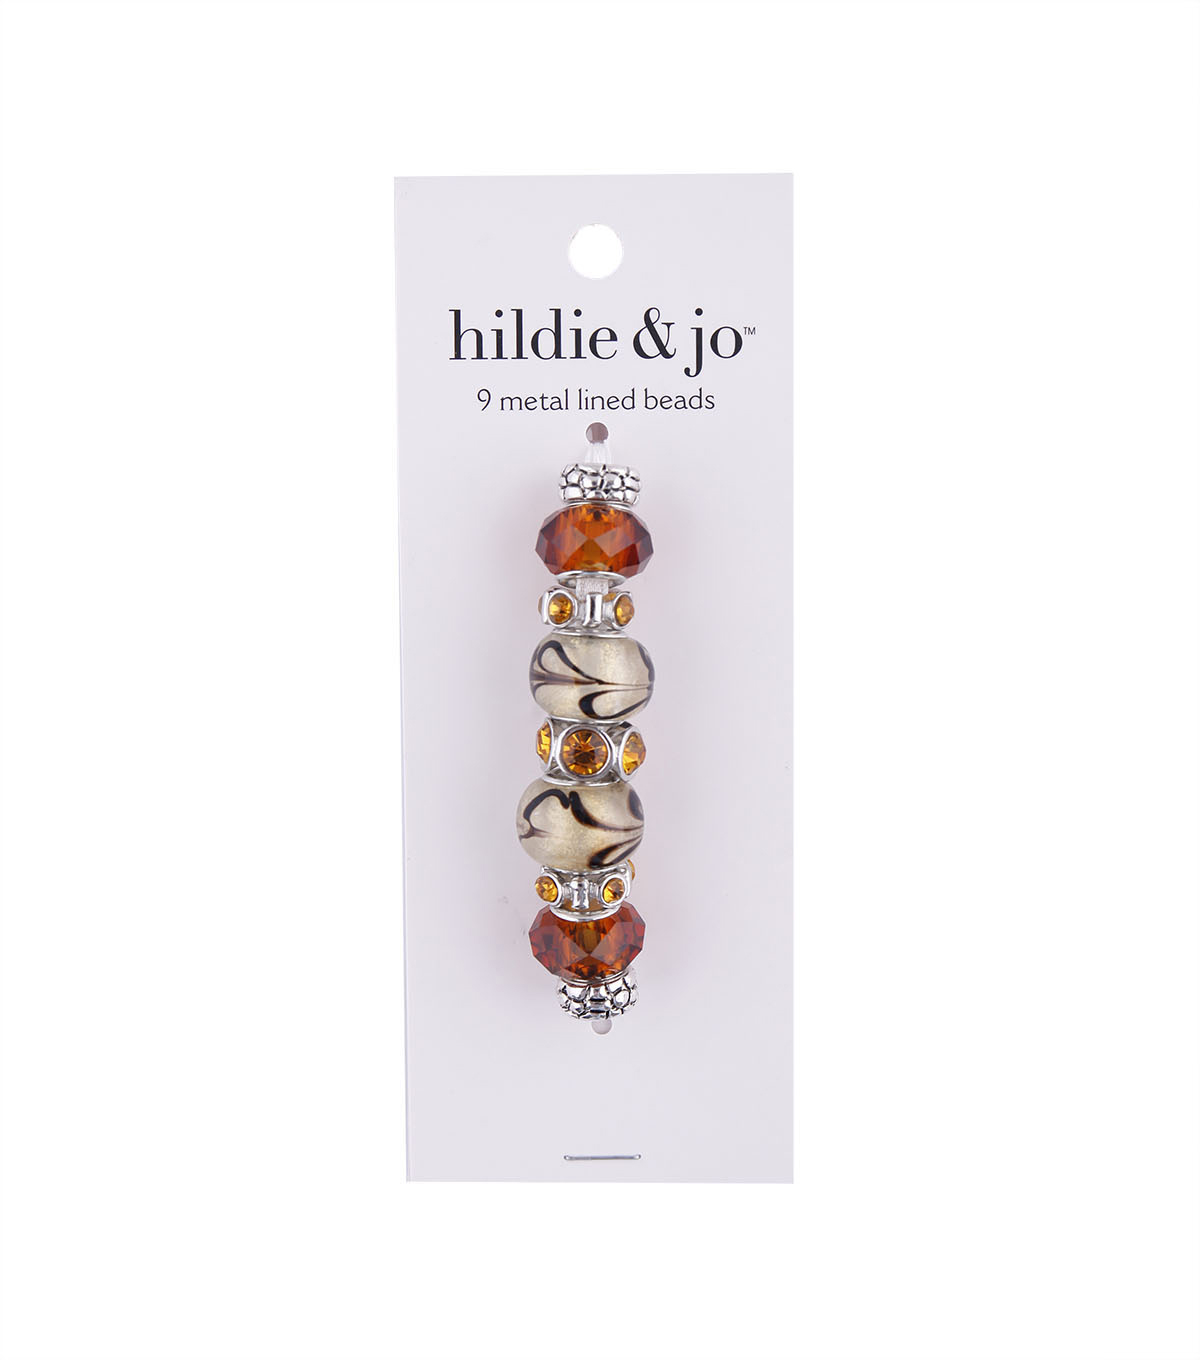 hildie & jo™ Mix & Mingle Metal Lined Glass Beads-Coffee Brown